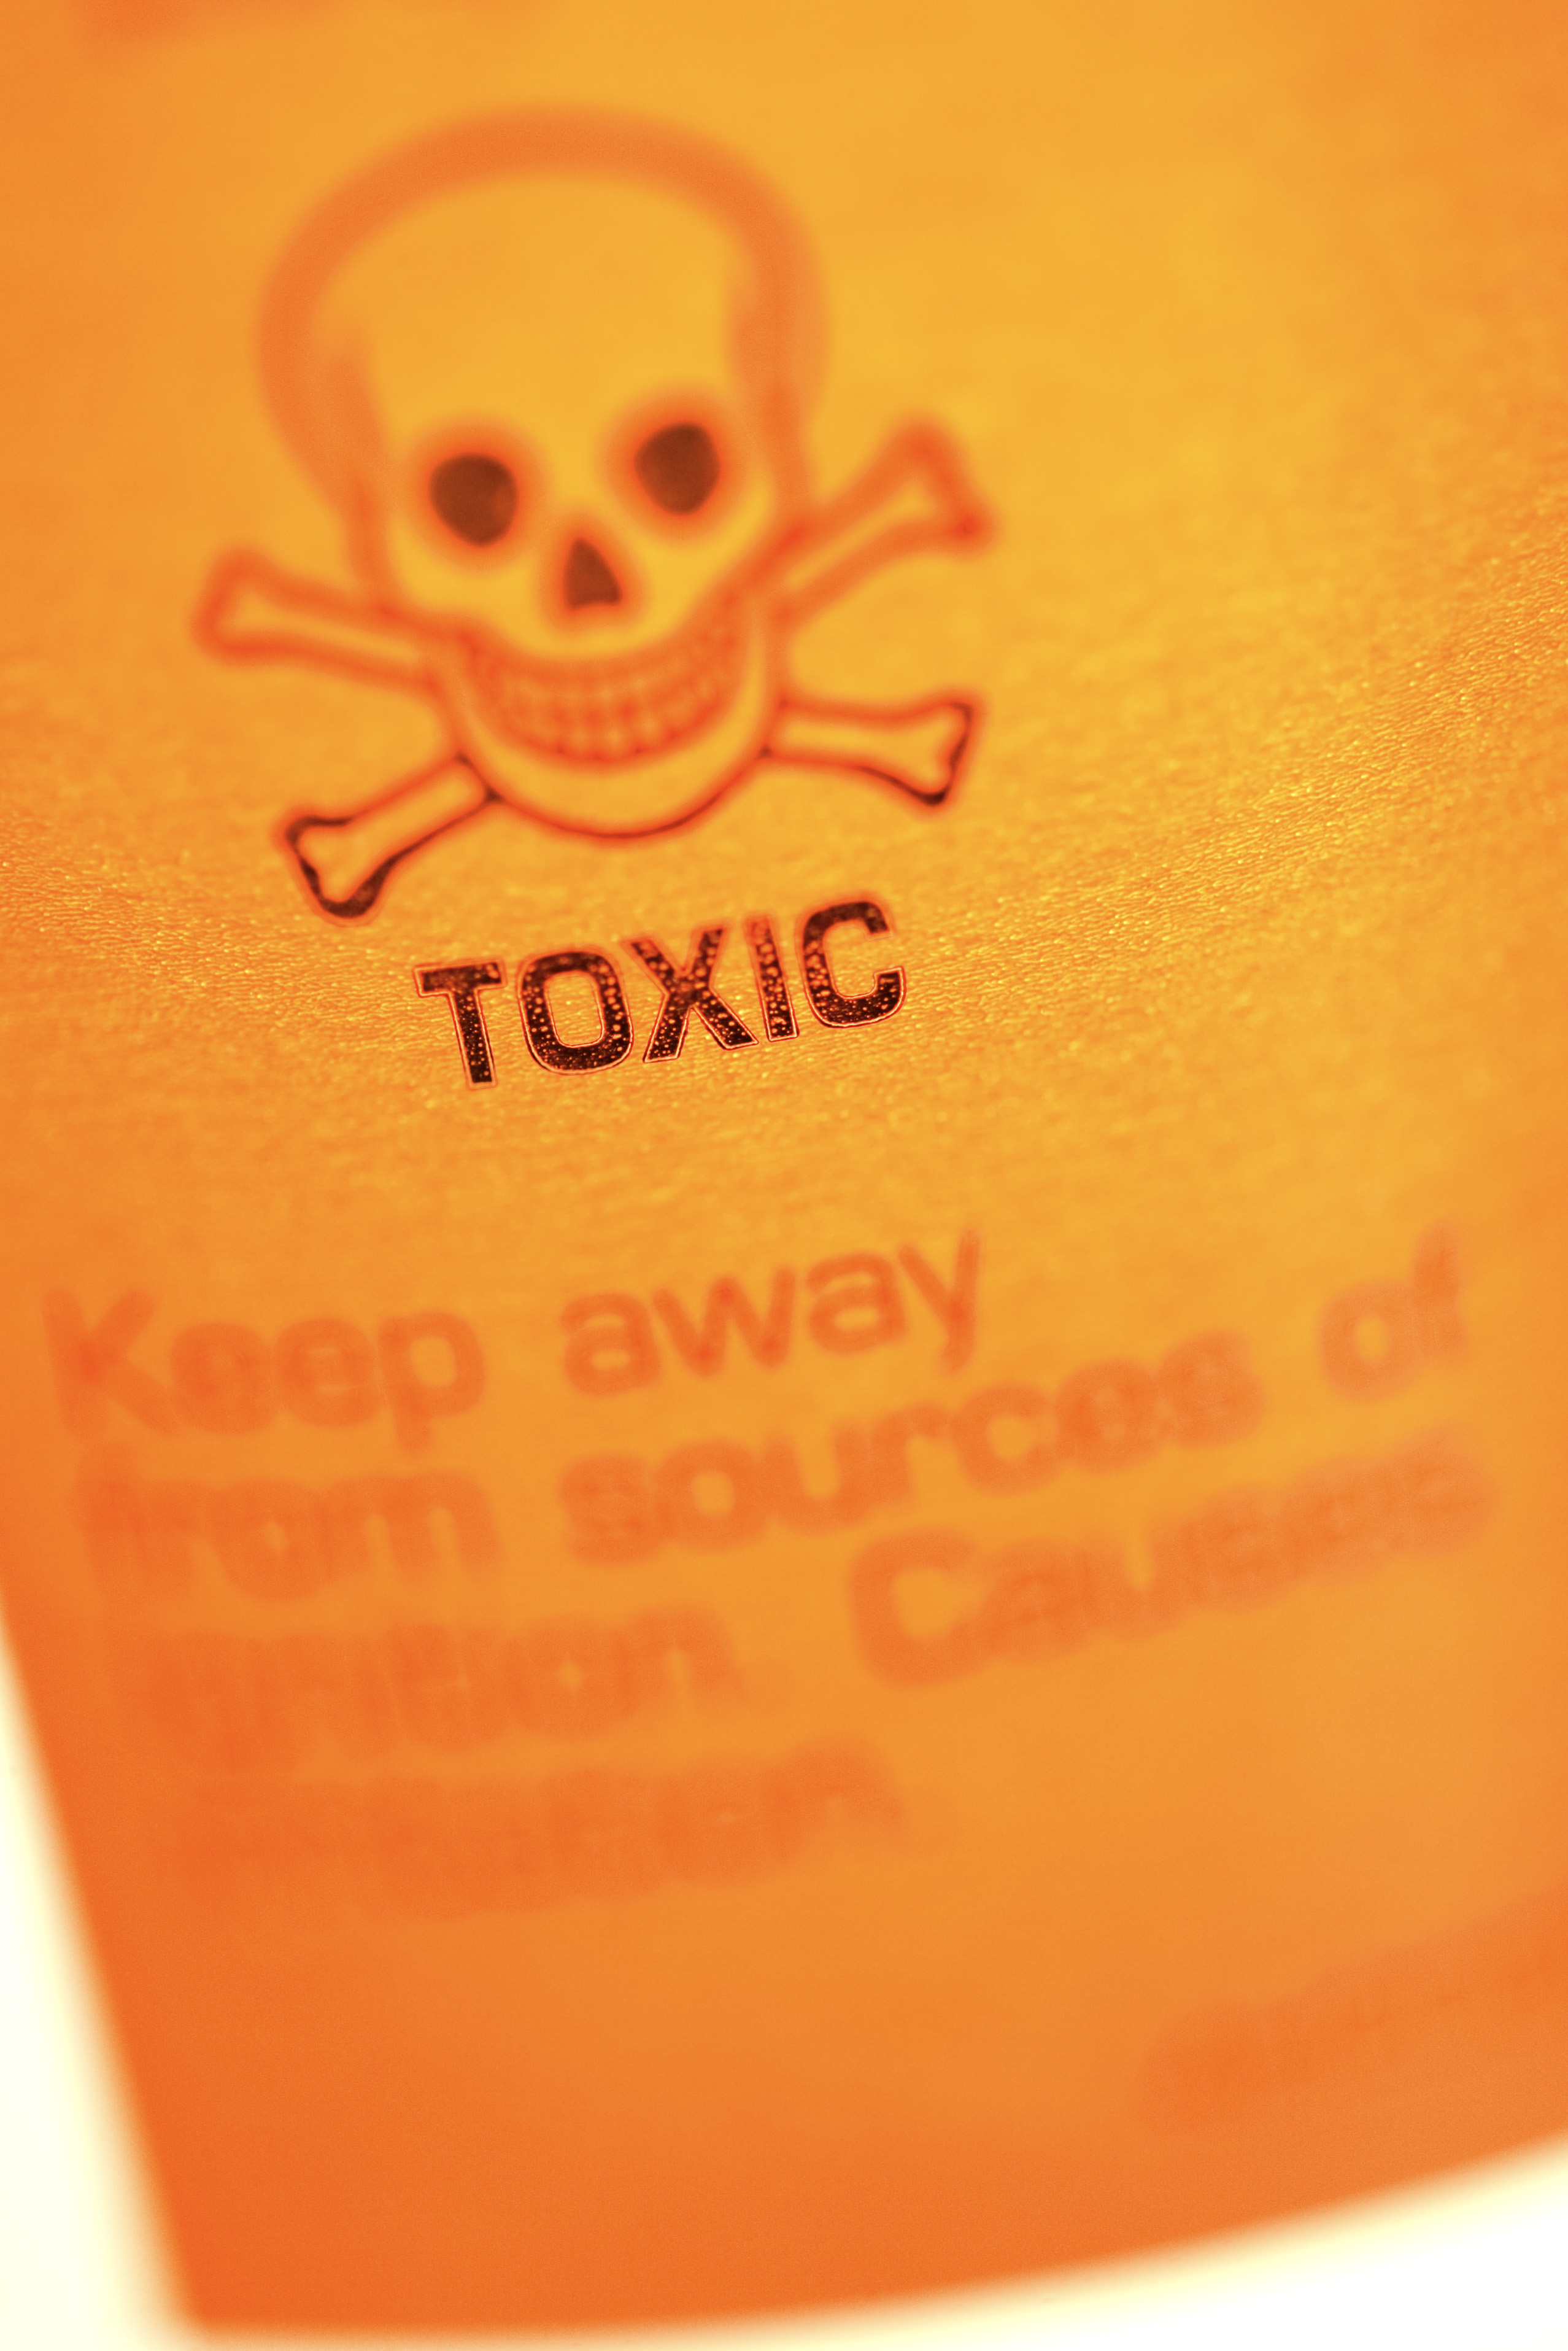 Toxic is Oxford Word of the Year